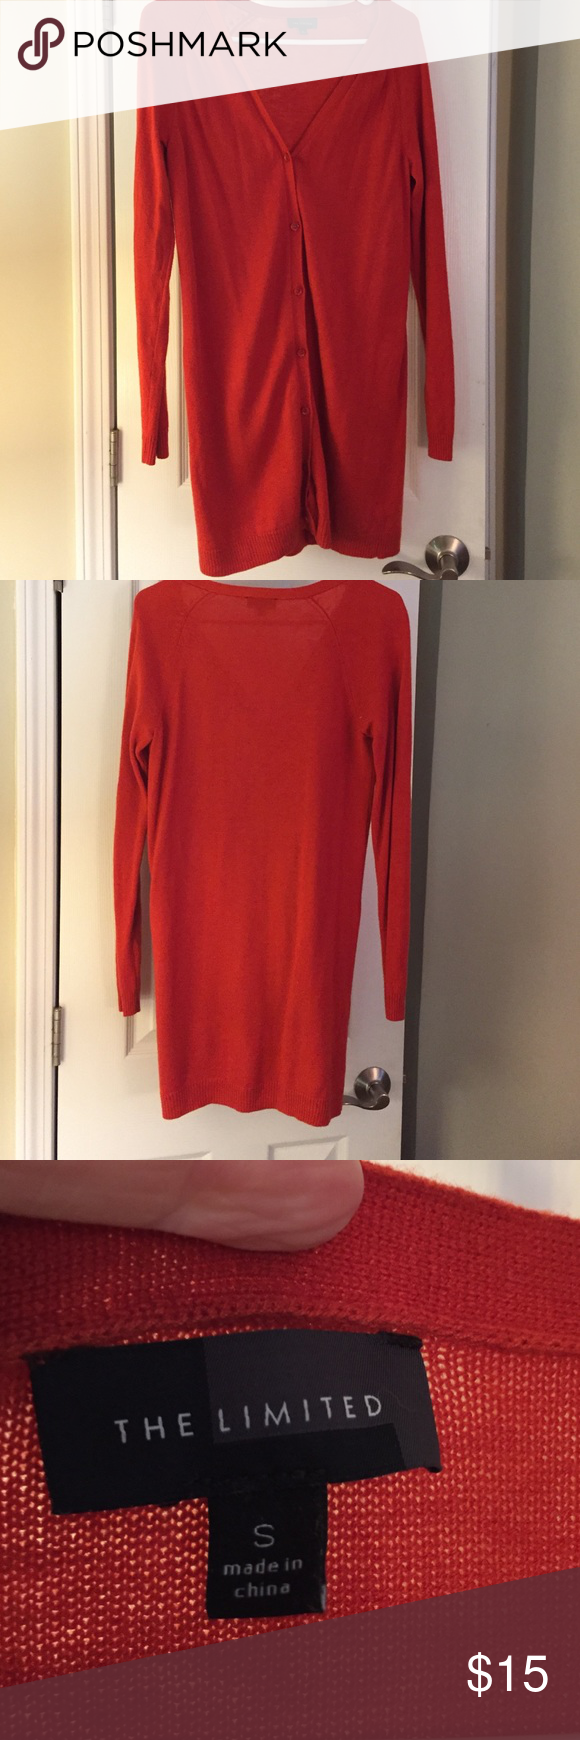 Extra long orange The Limited cardigan The Limited button down cardigan EXTRA long. Super cute over a dress or with skinny jeans. Great burnt orange fall color. Worn three times. No holes, pilling, etc great condition. Small but this would fit someone who wears a medium too. The Limited Tops